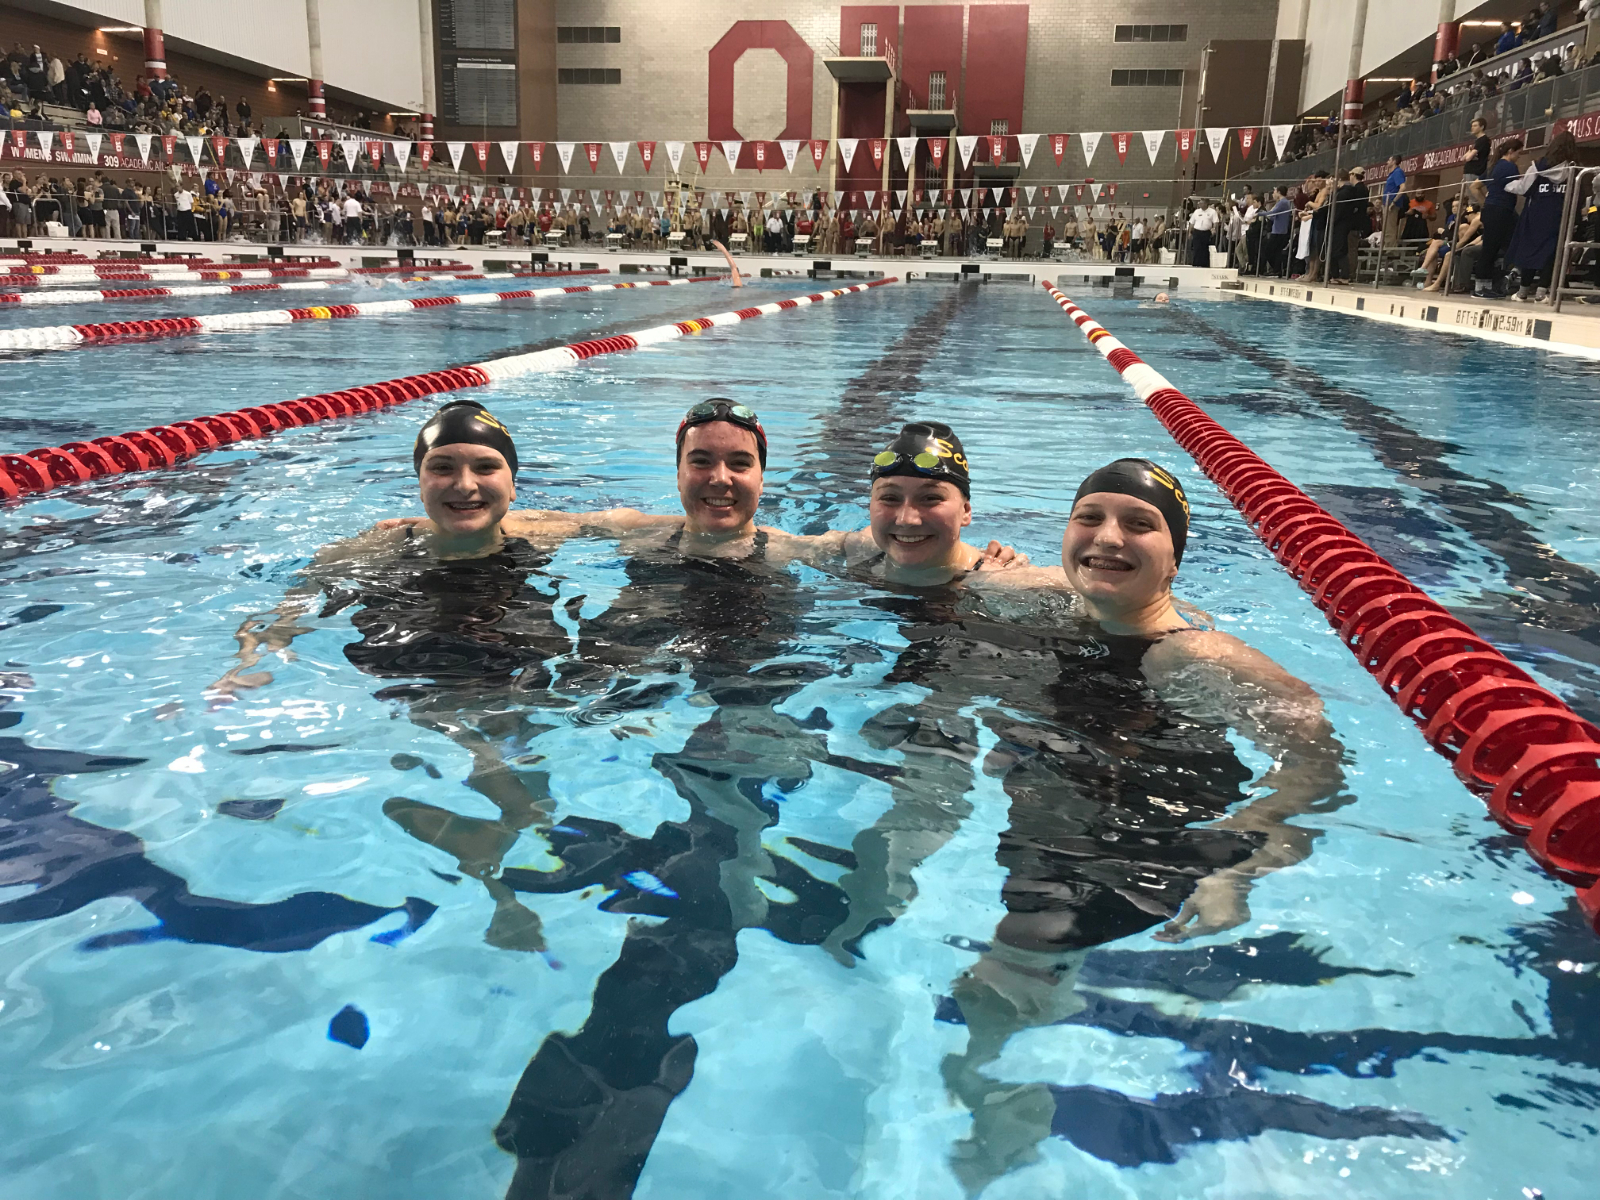 Tri-Valley swimmers compete (well) at prestigious Neb Reed Memorial Invite; TV's Caroline Holmes sets pair of school pool records